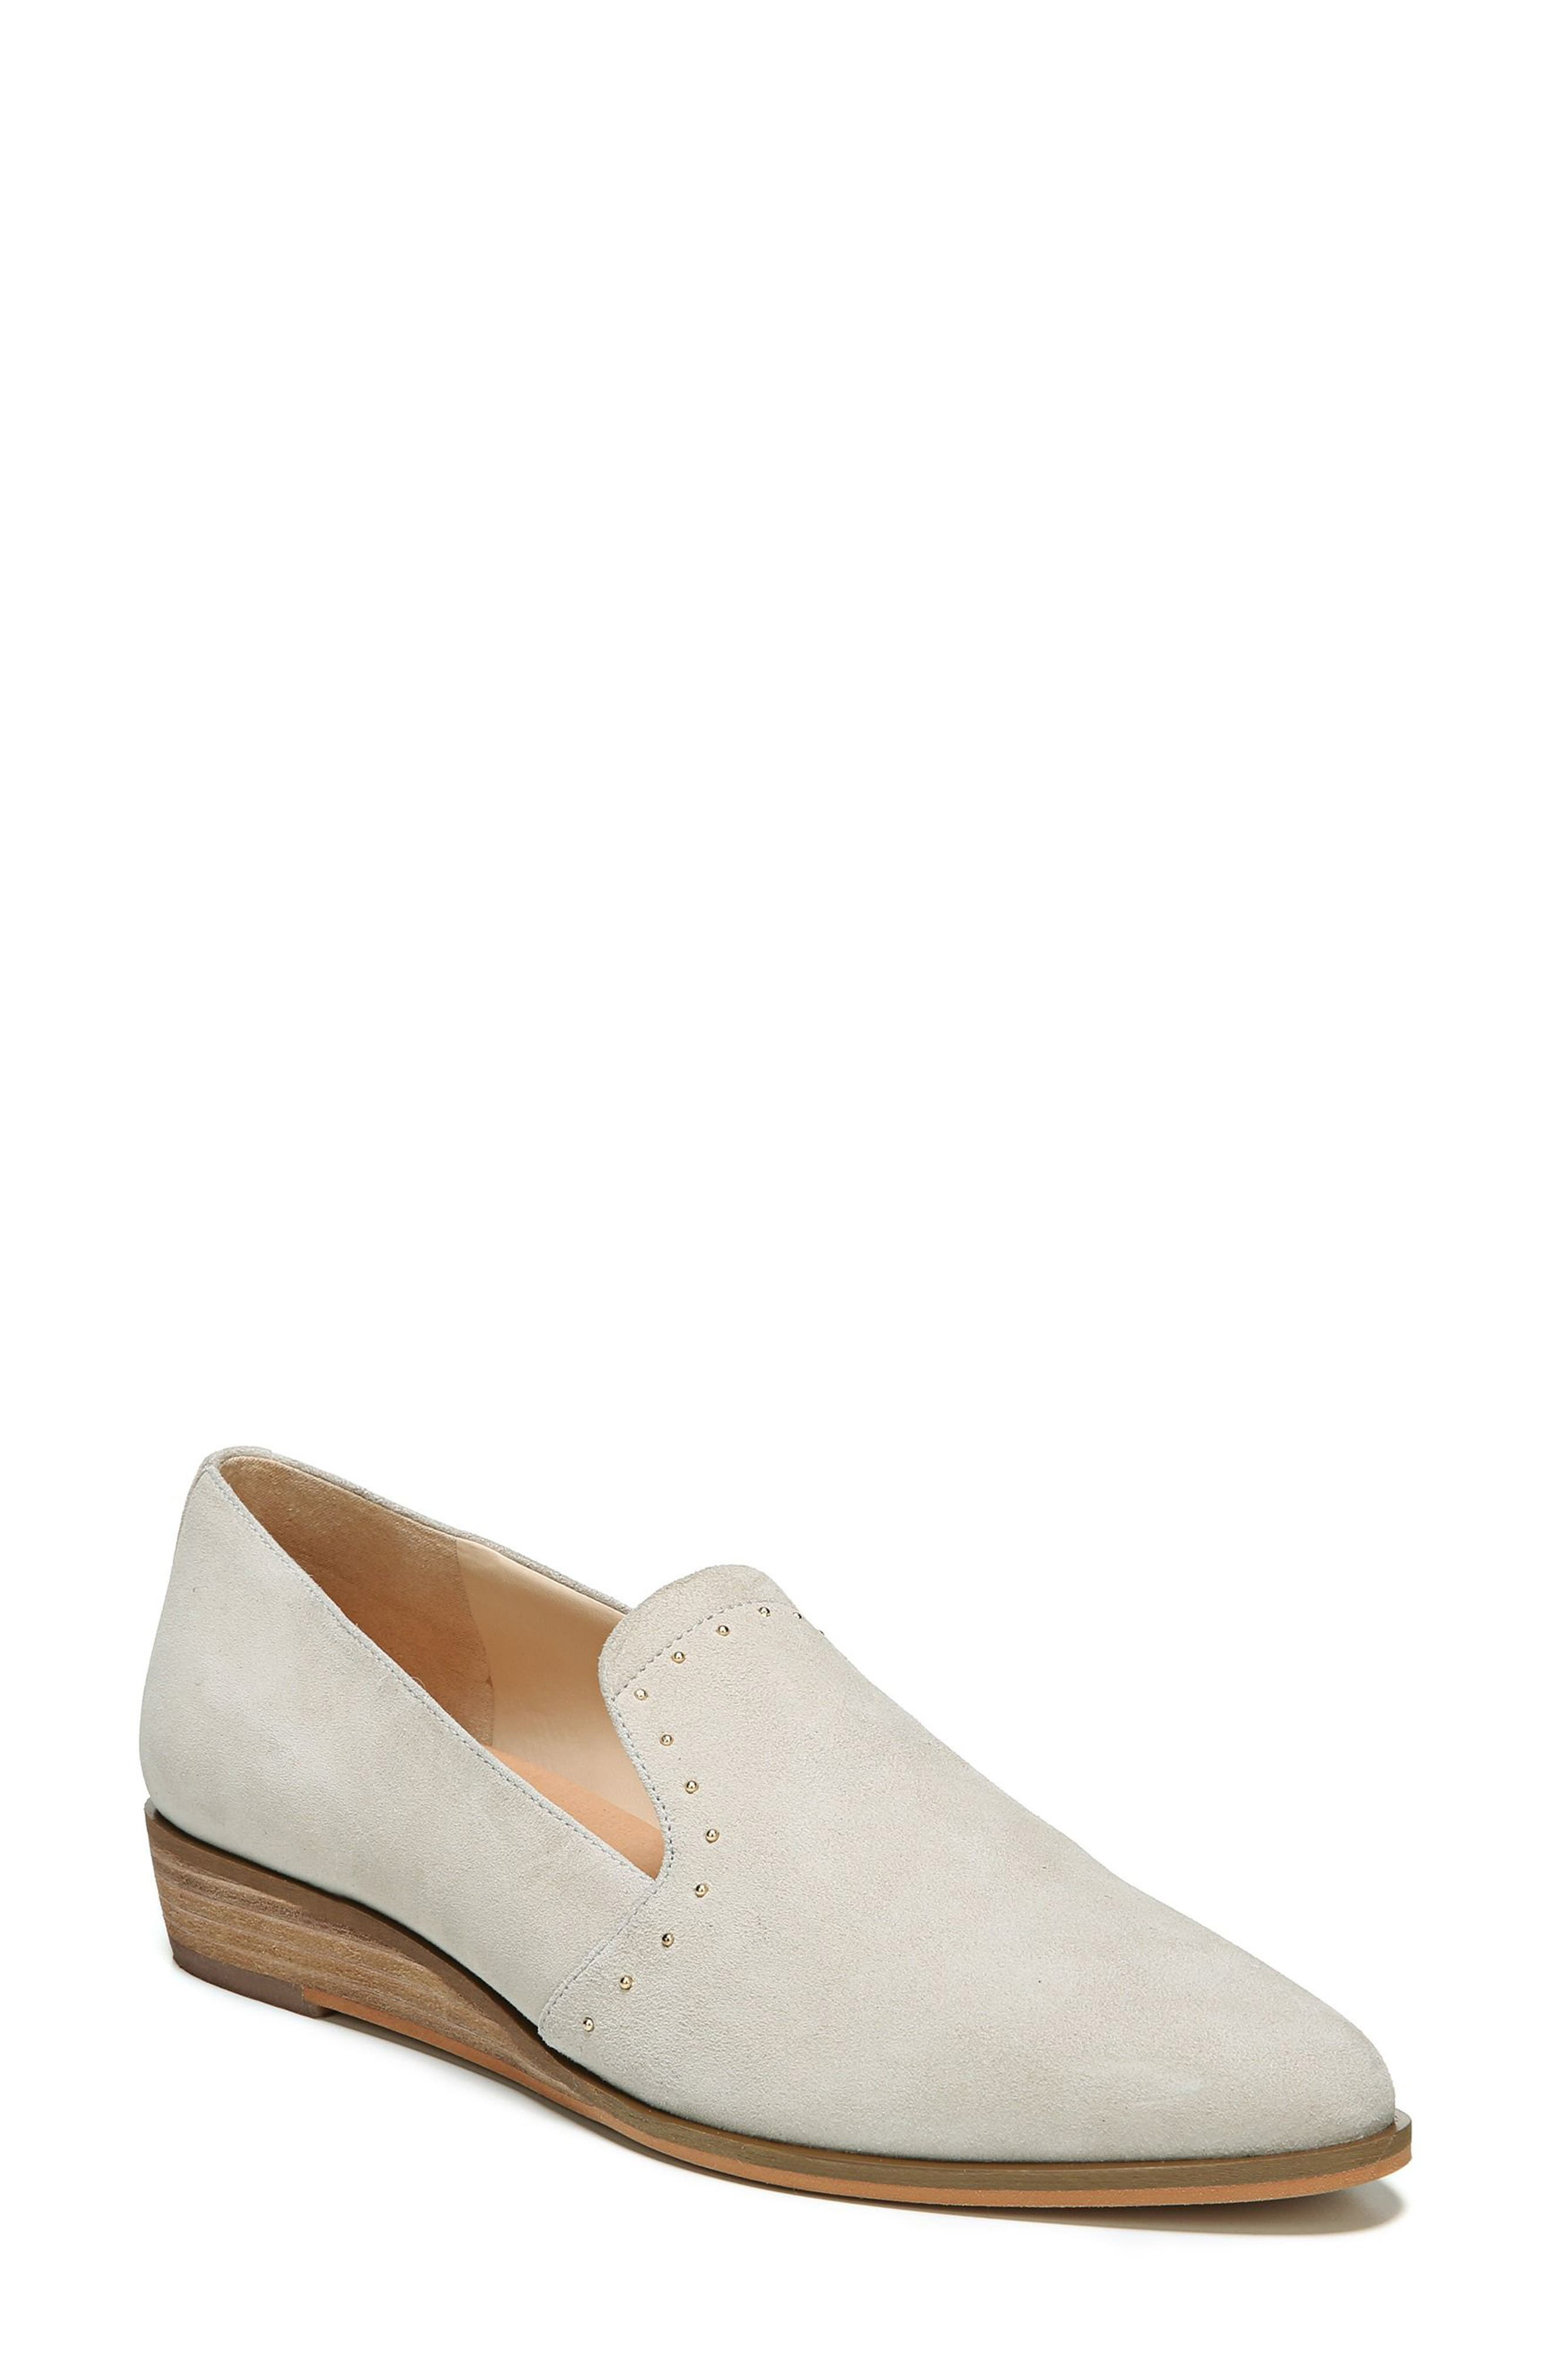 Keane Loafer Wedge,                             Main thumbnail 2, color,